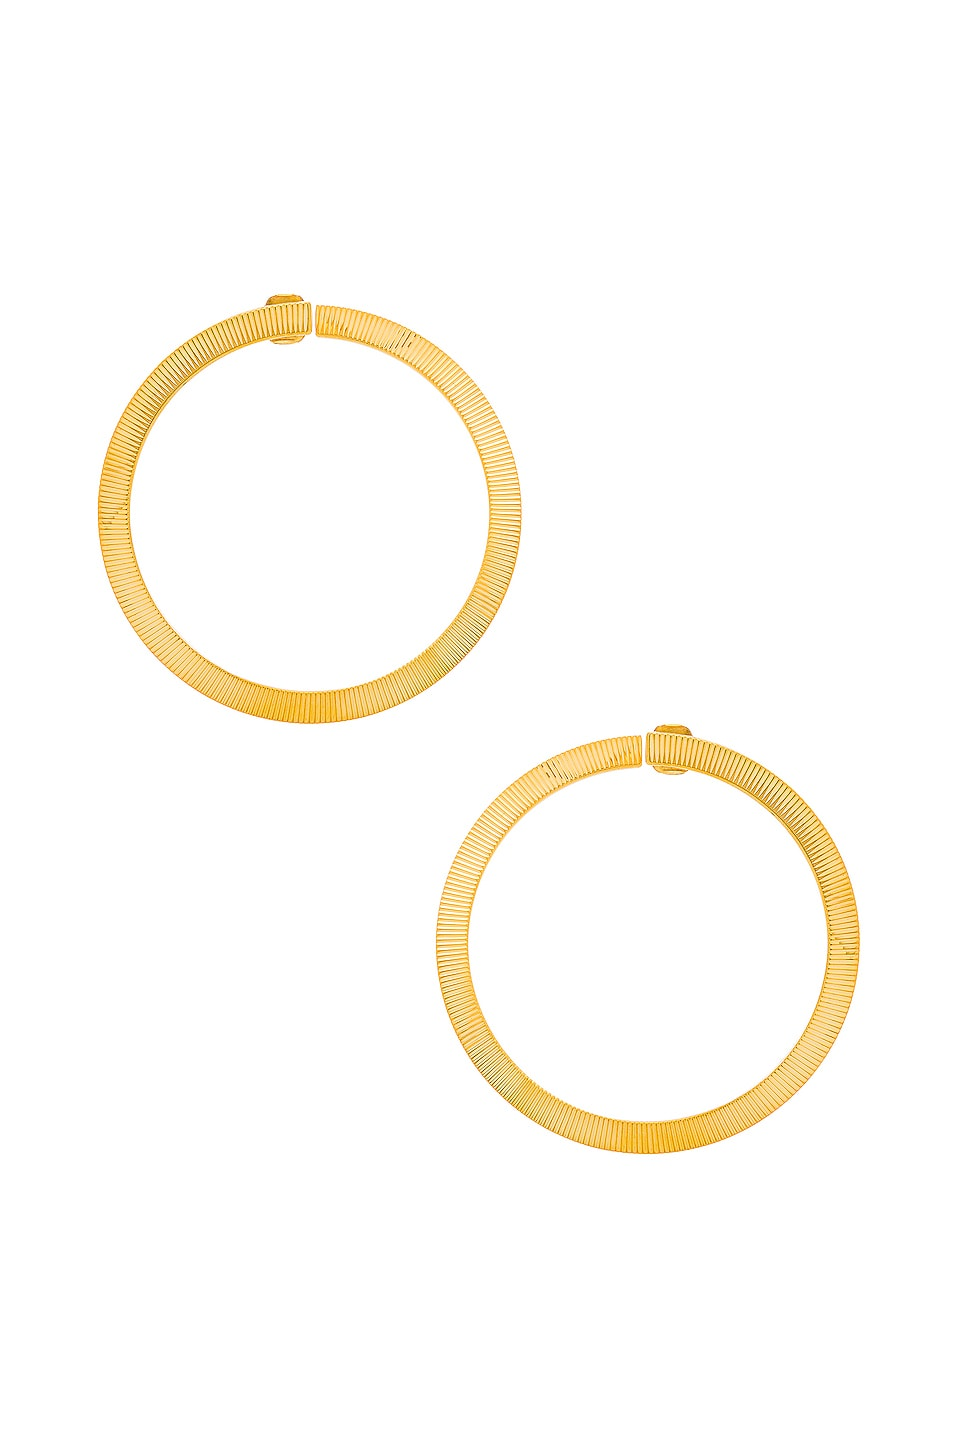 LARUICCI Twisted Hoop Earrings in Gold